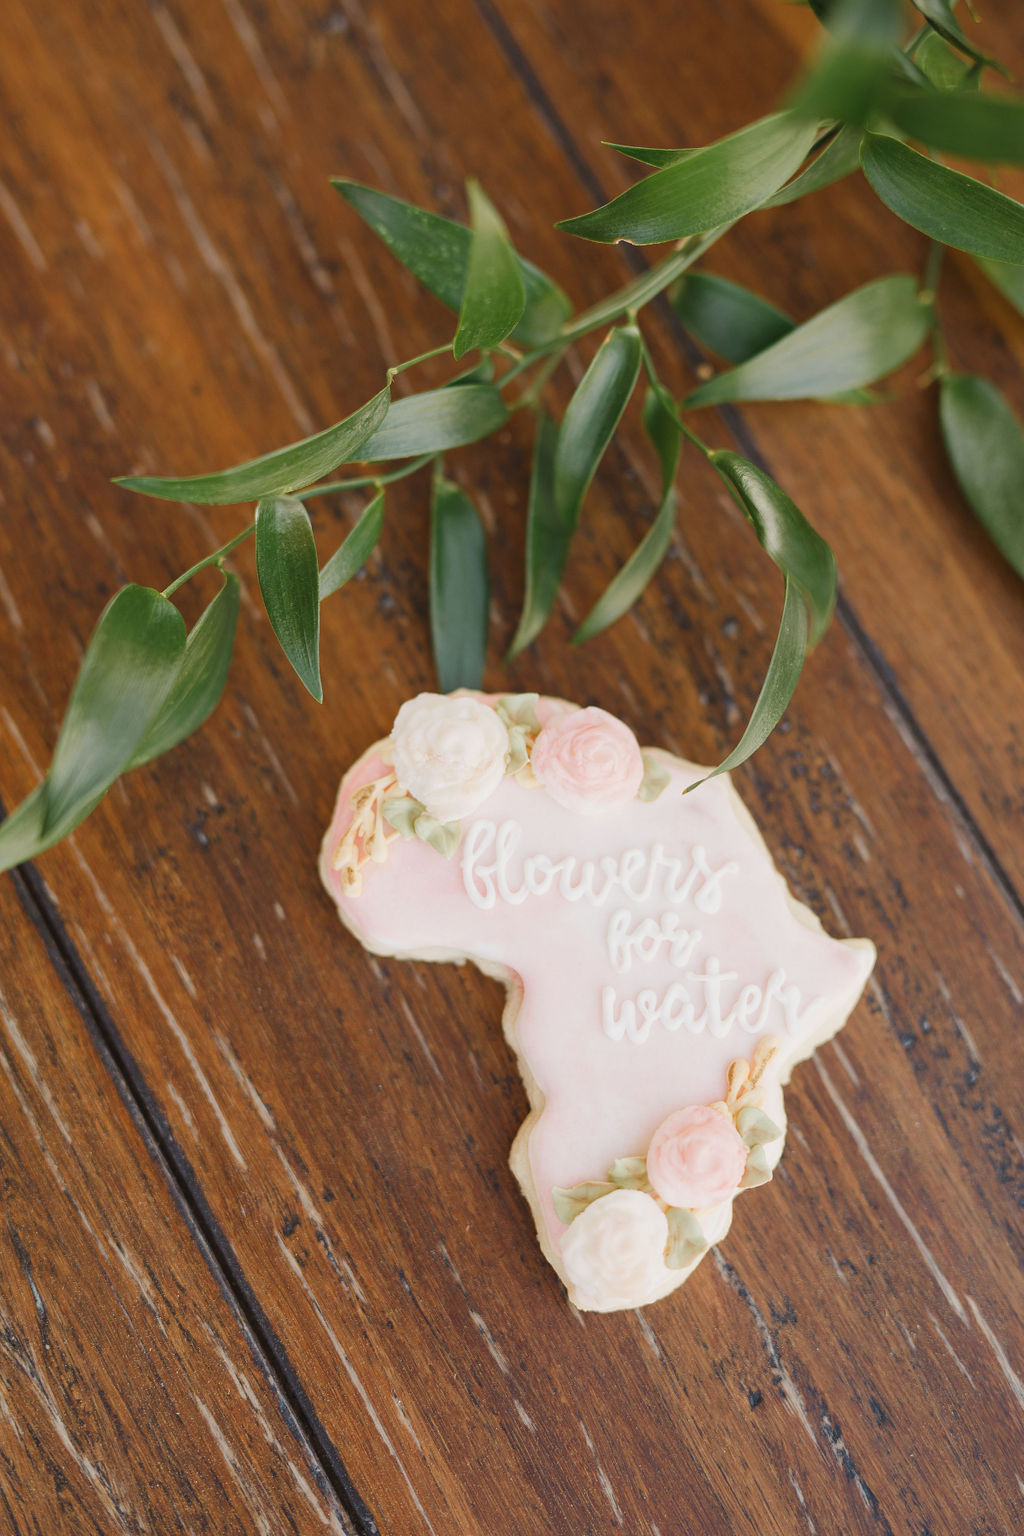 custom cookies by Cub and Cuppy at flower crown workshop in southern California by Love Sparkle Pretty to provide clean water for World Vision